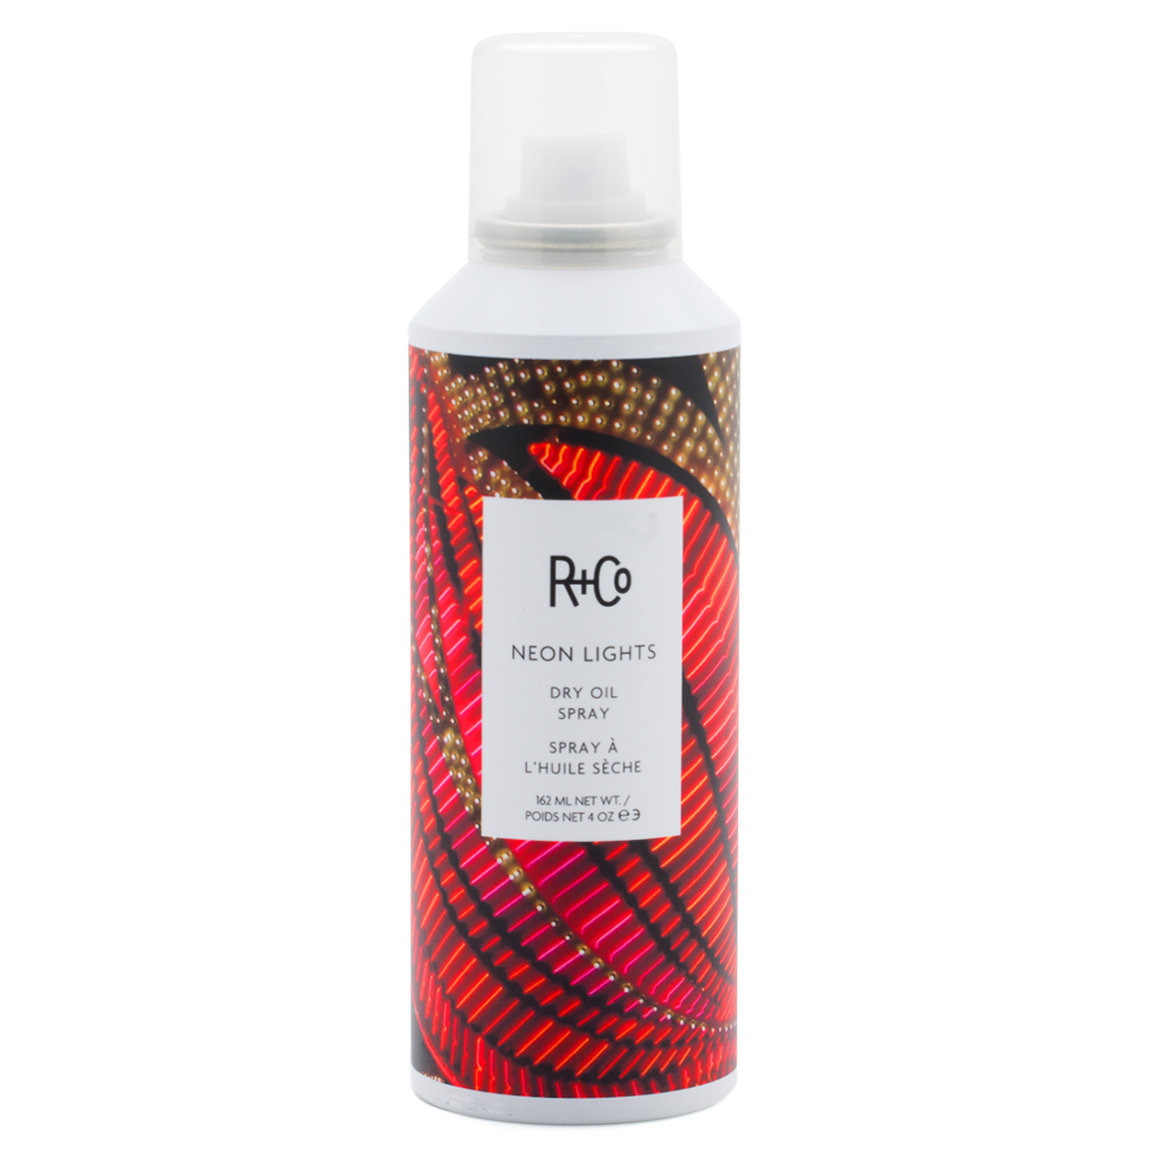 R+Co Neon Lights Dry Oil Spray 4 fl oz alternative view 1 - product swatch.